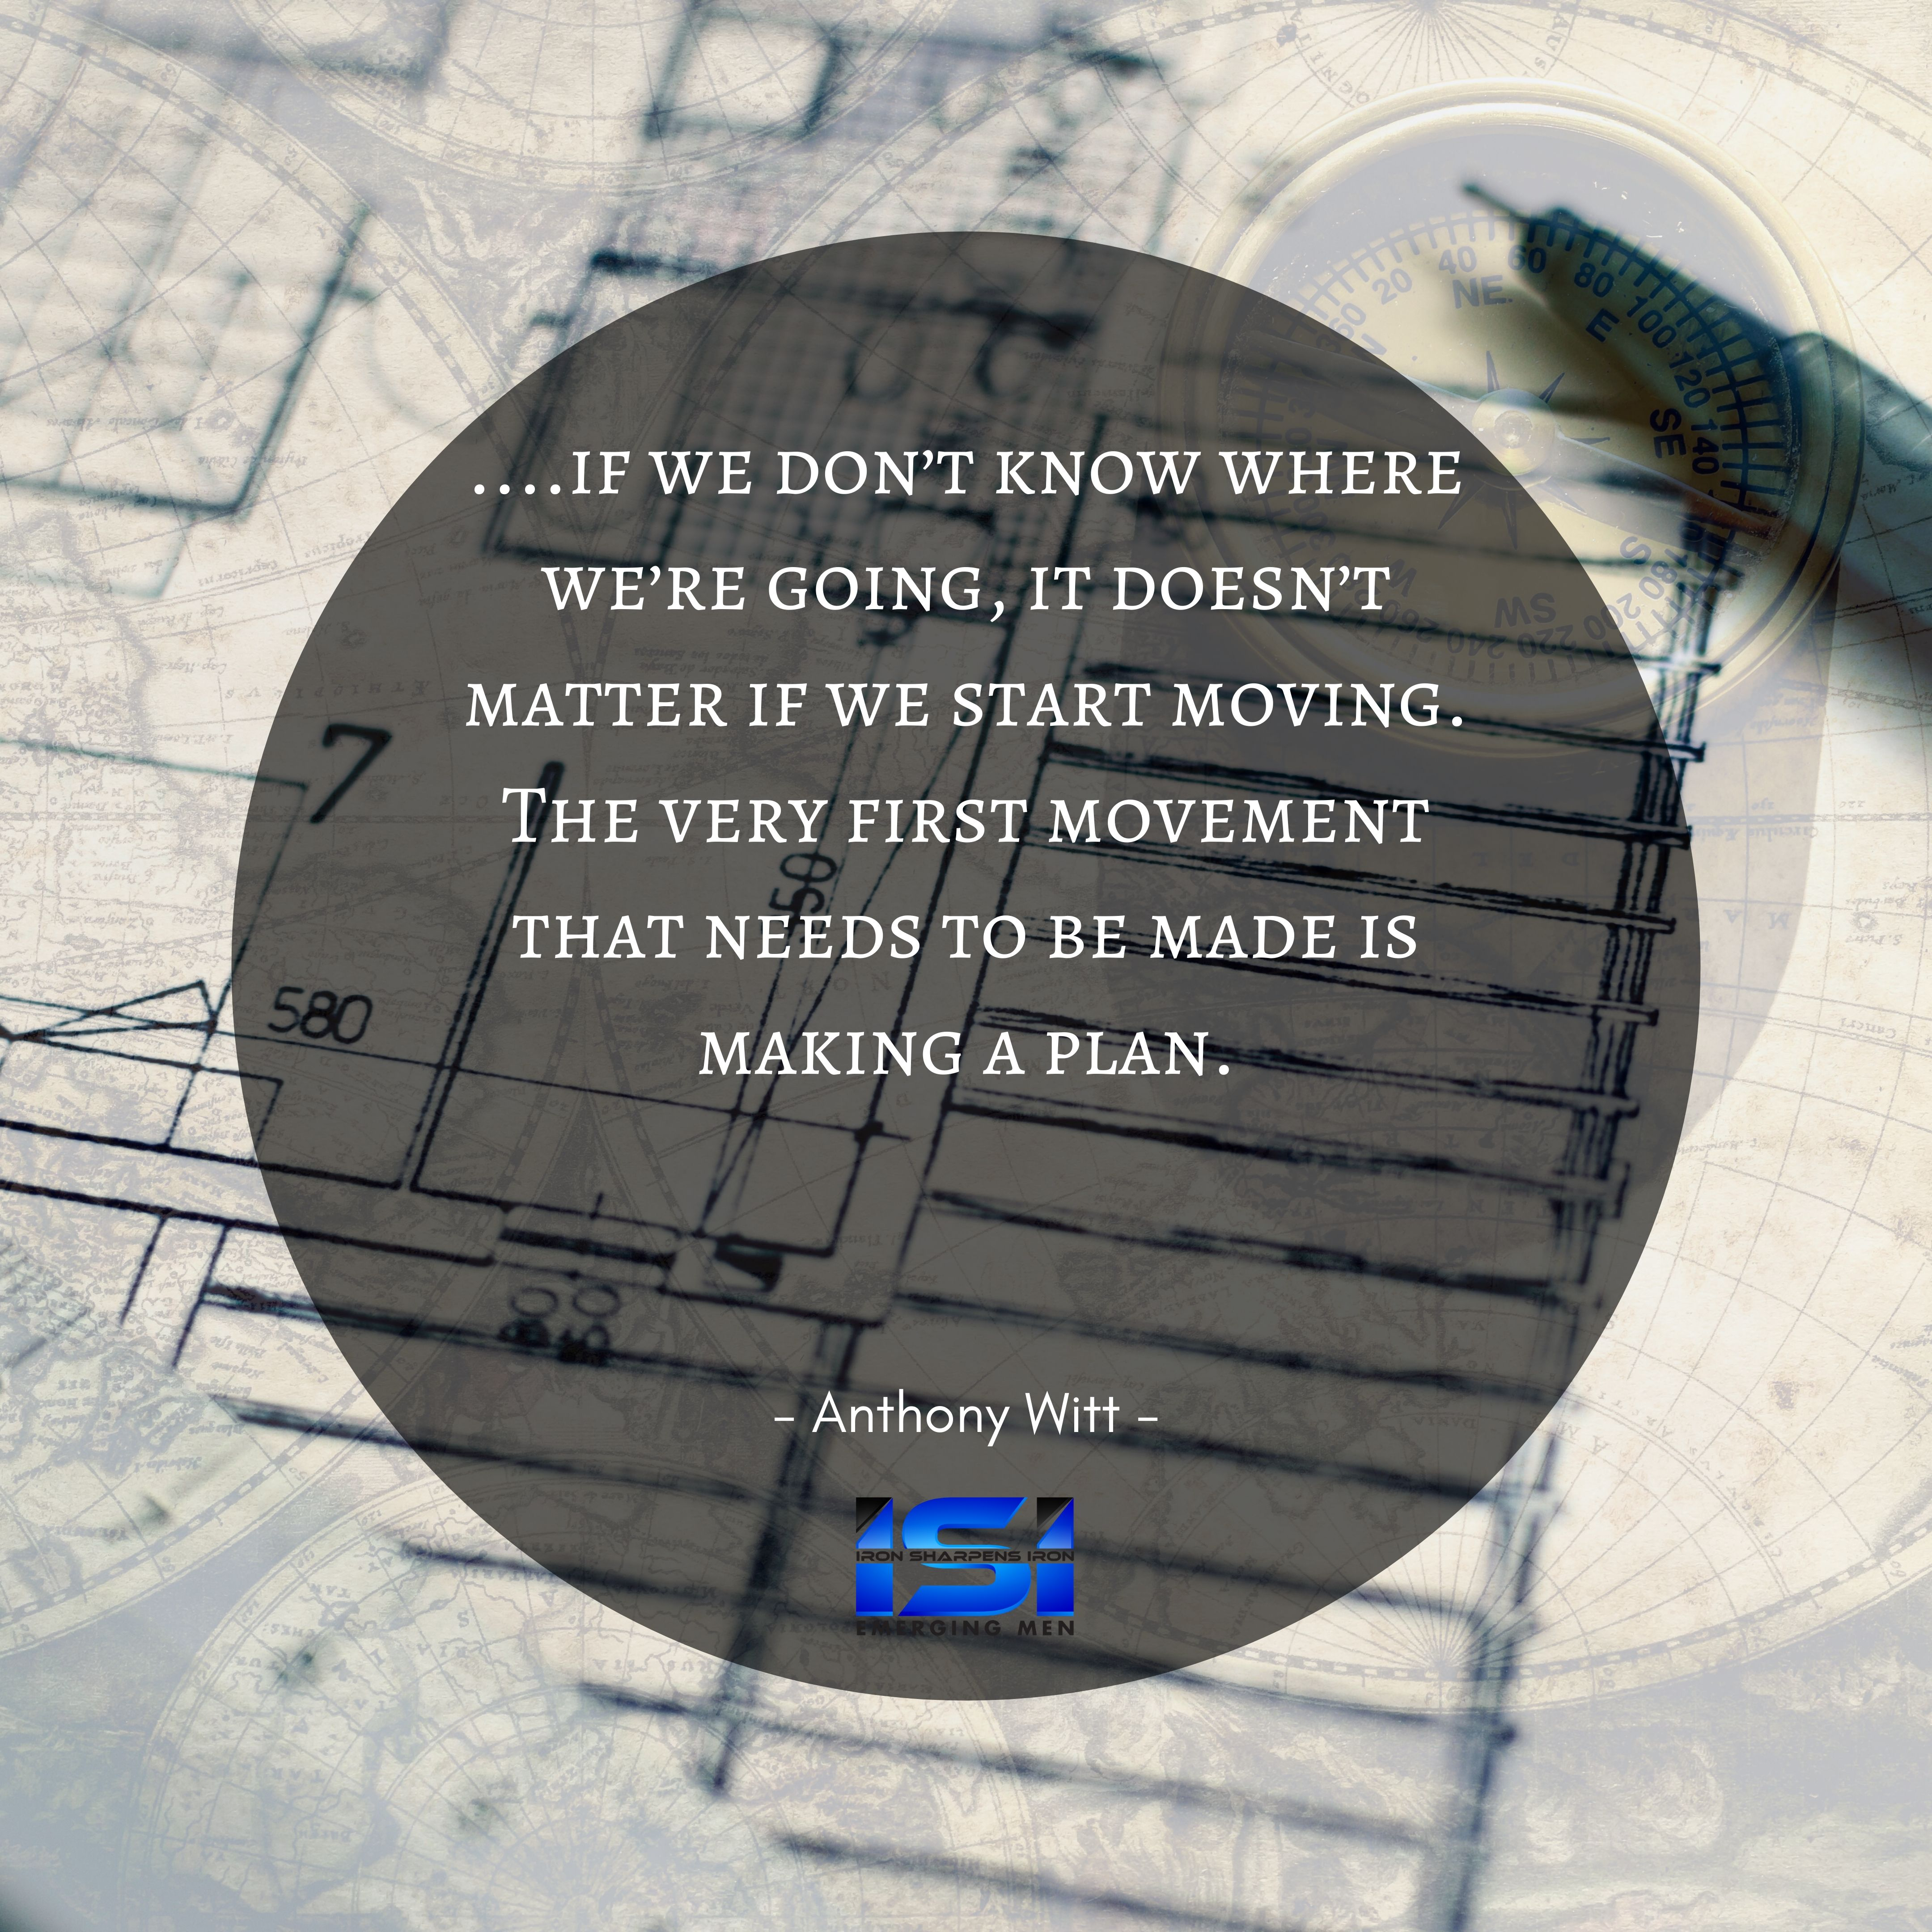 if we don't know where we're going, it doesn't matter if we start moving. The very first movement that needs to be made is making a plan.